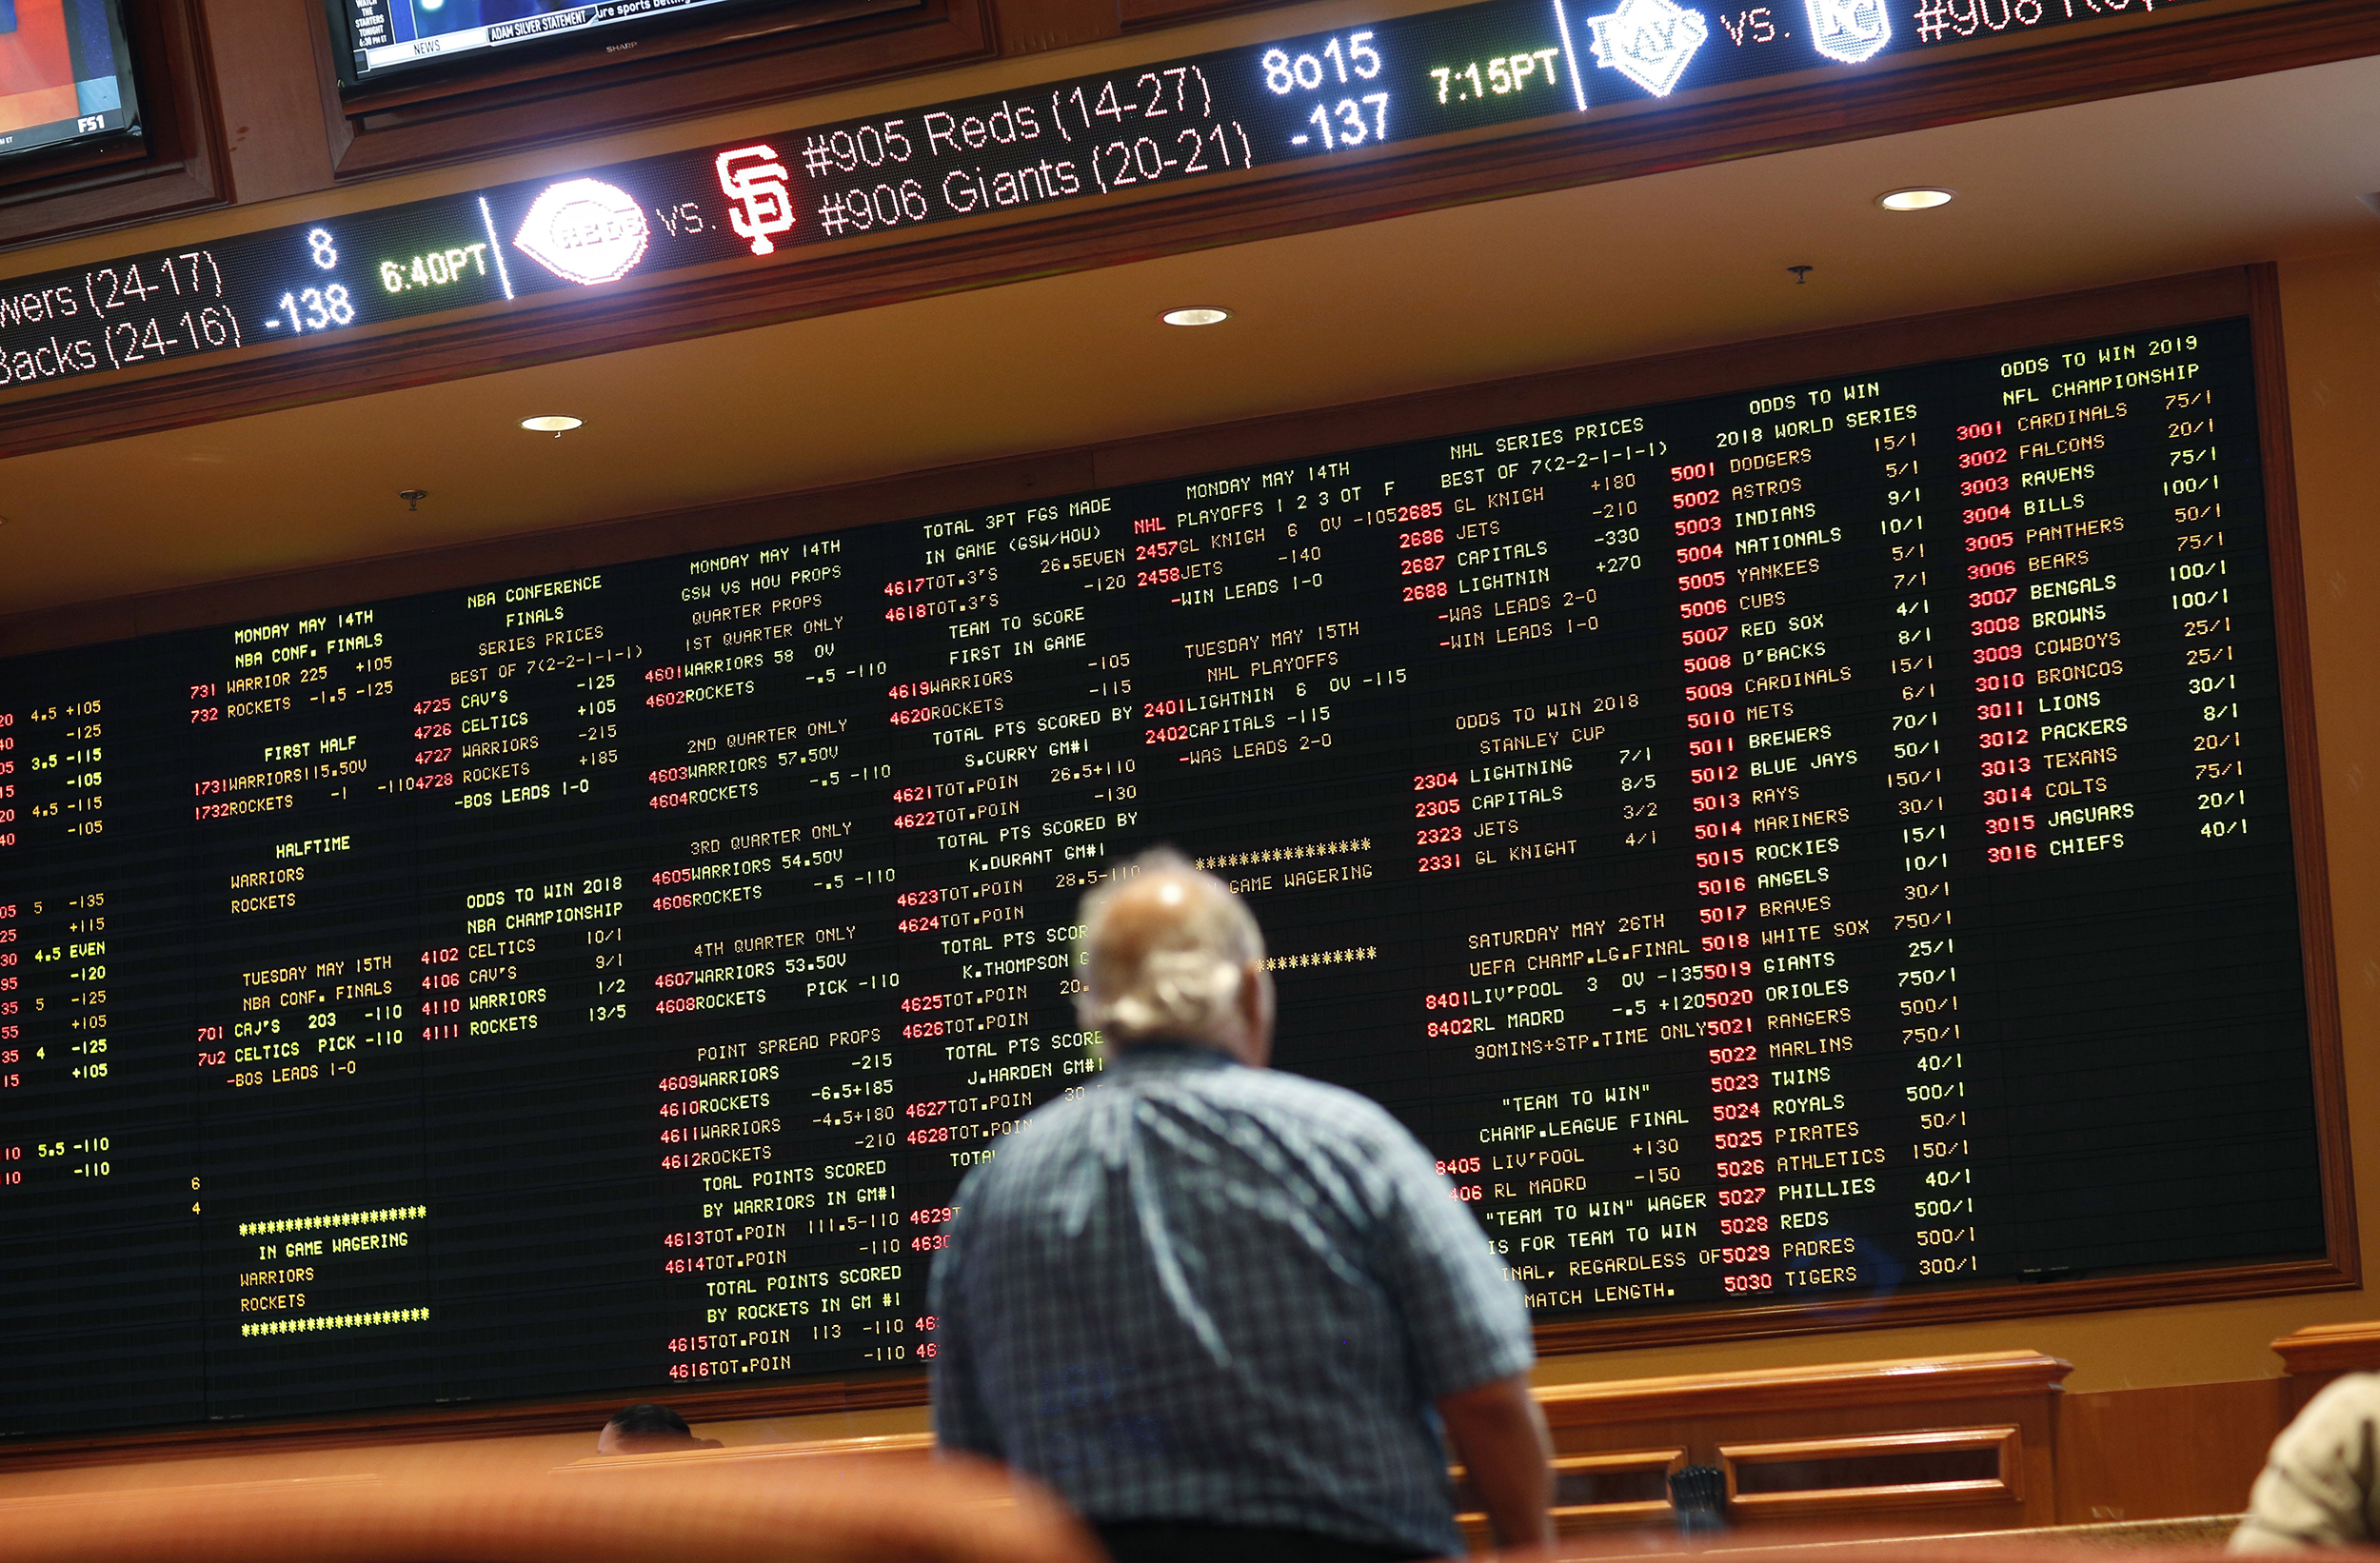 sports betting allowed in ny right now aug 12